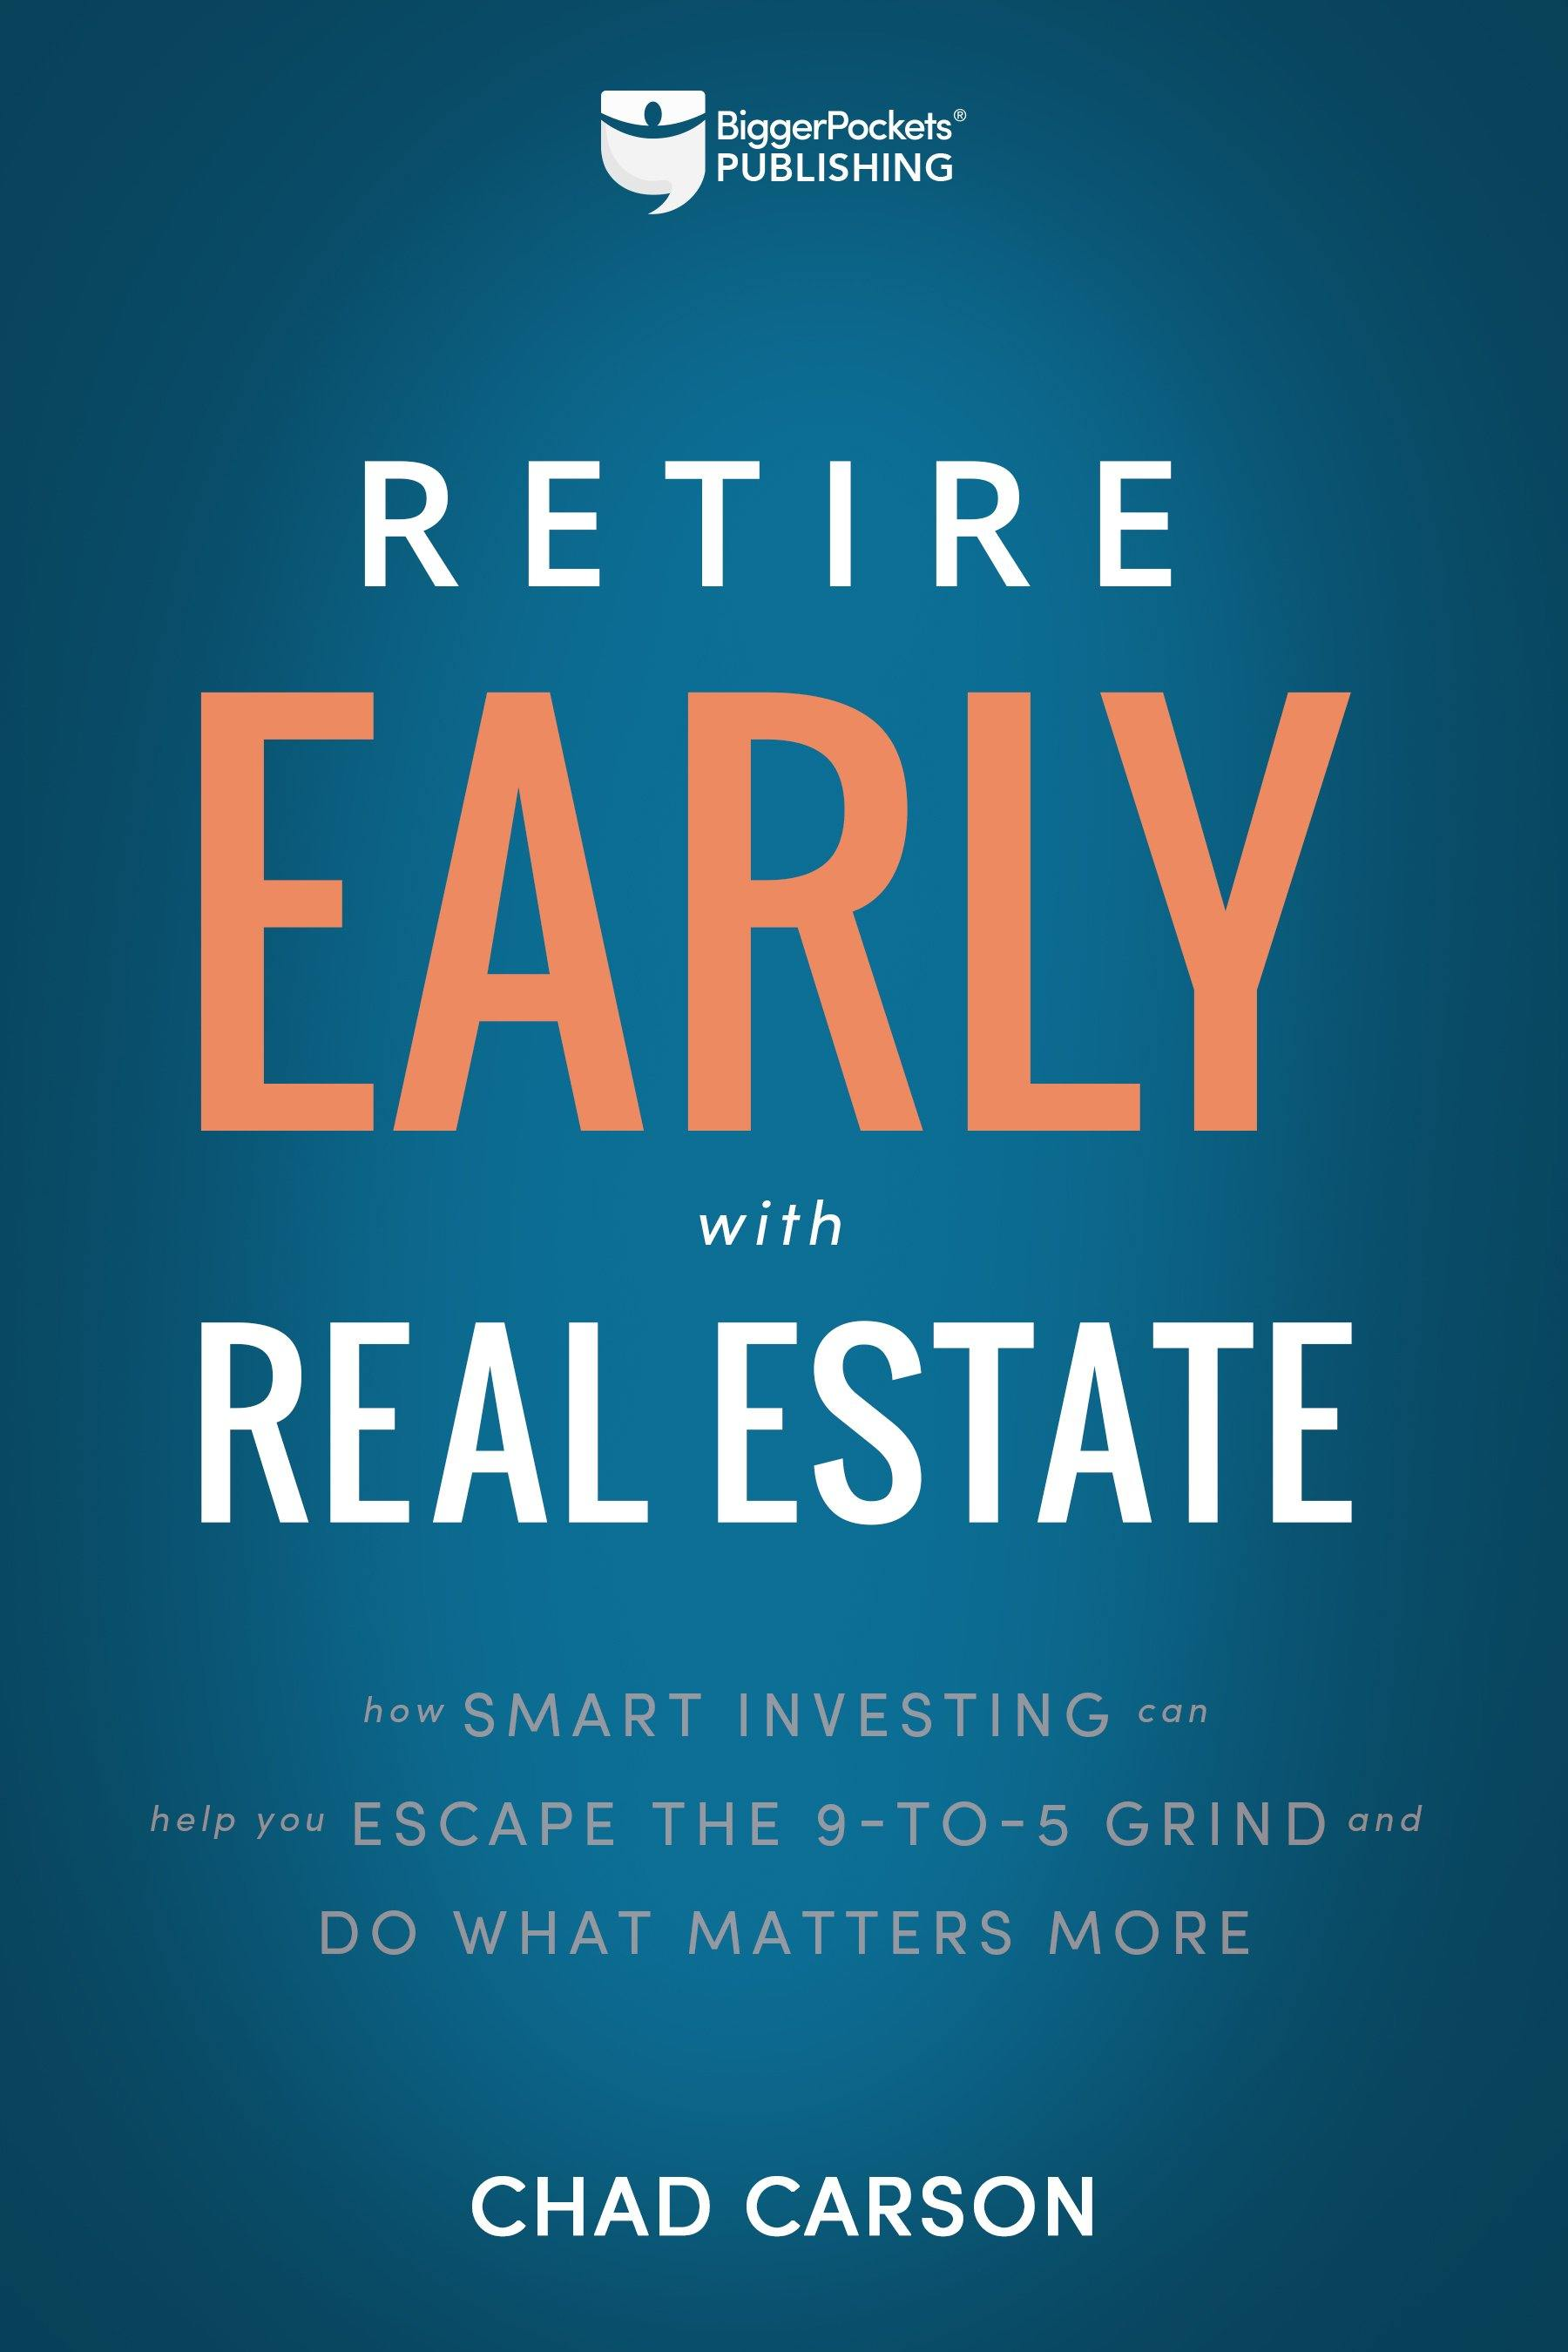 Retire Early with Real Estate - BiggerPockets Bookstore